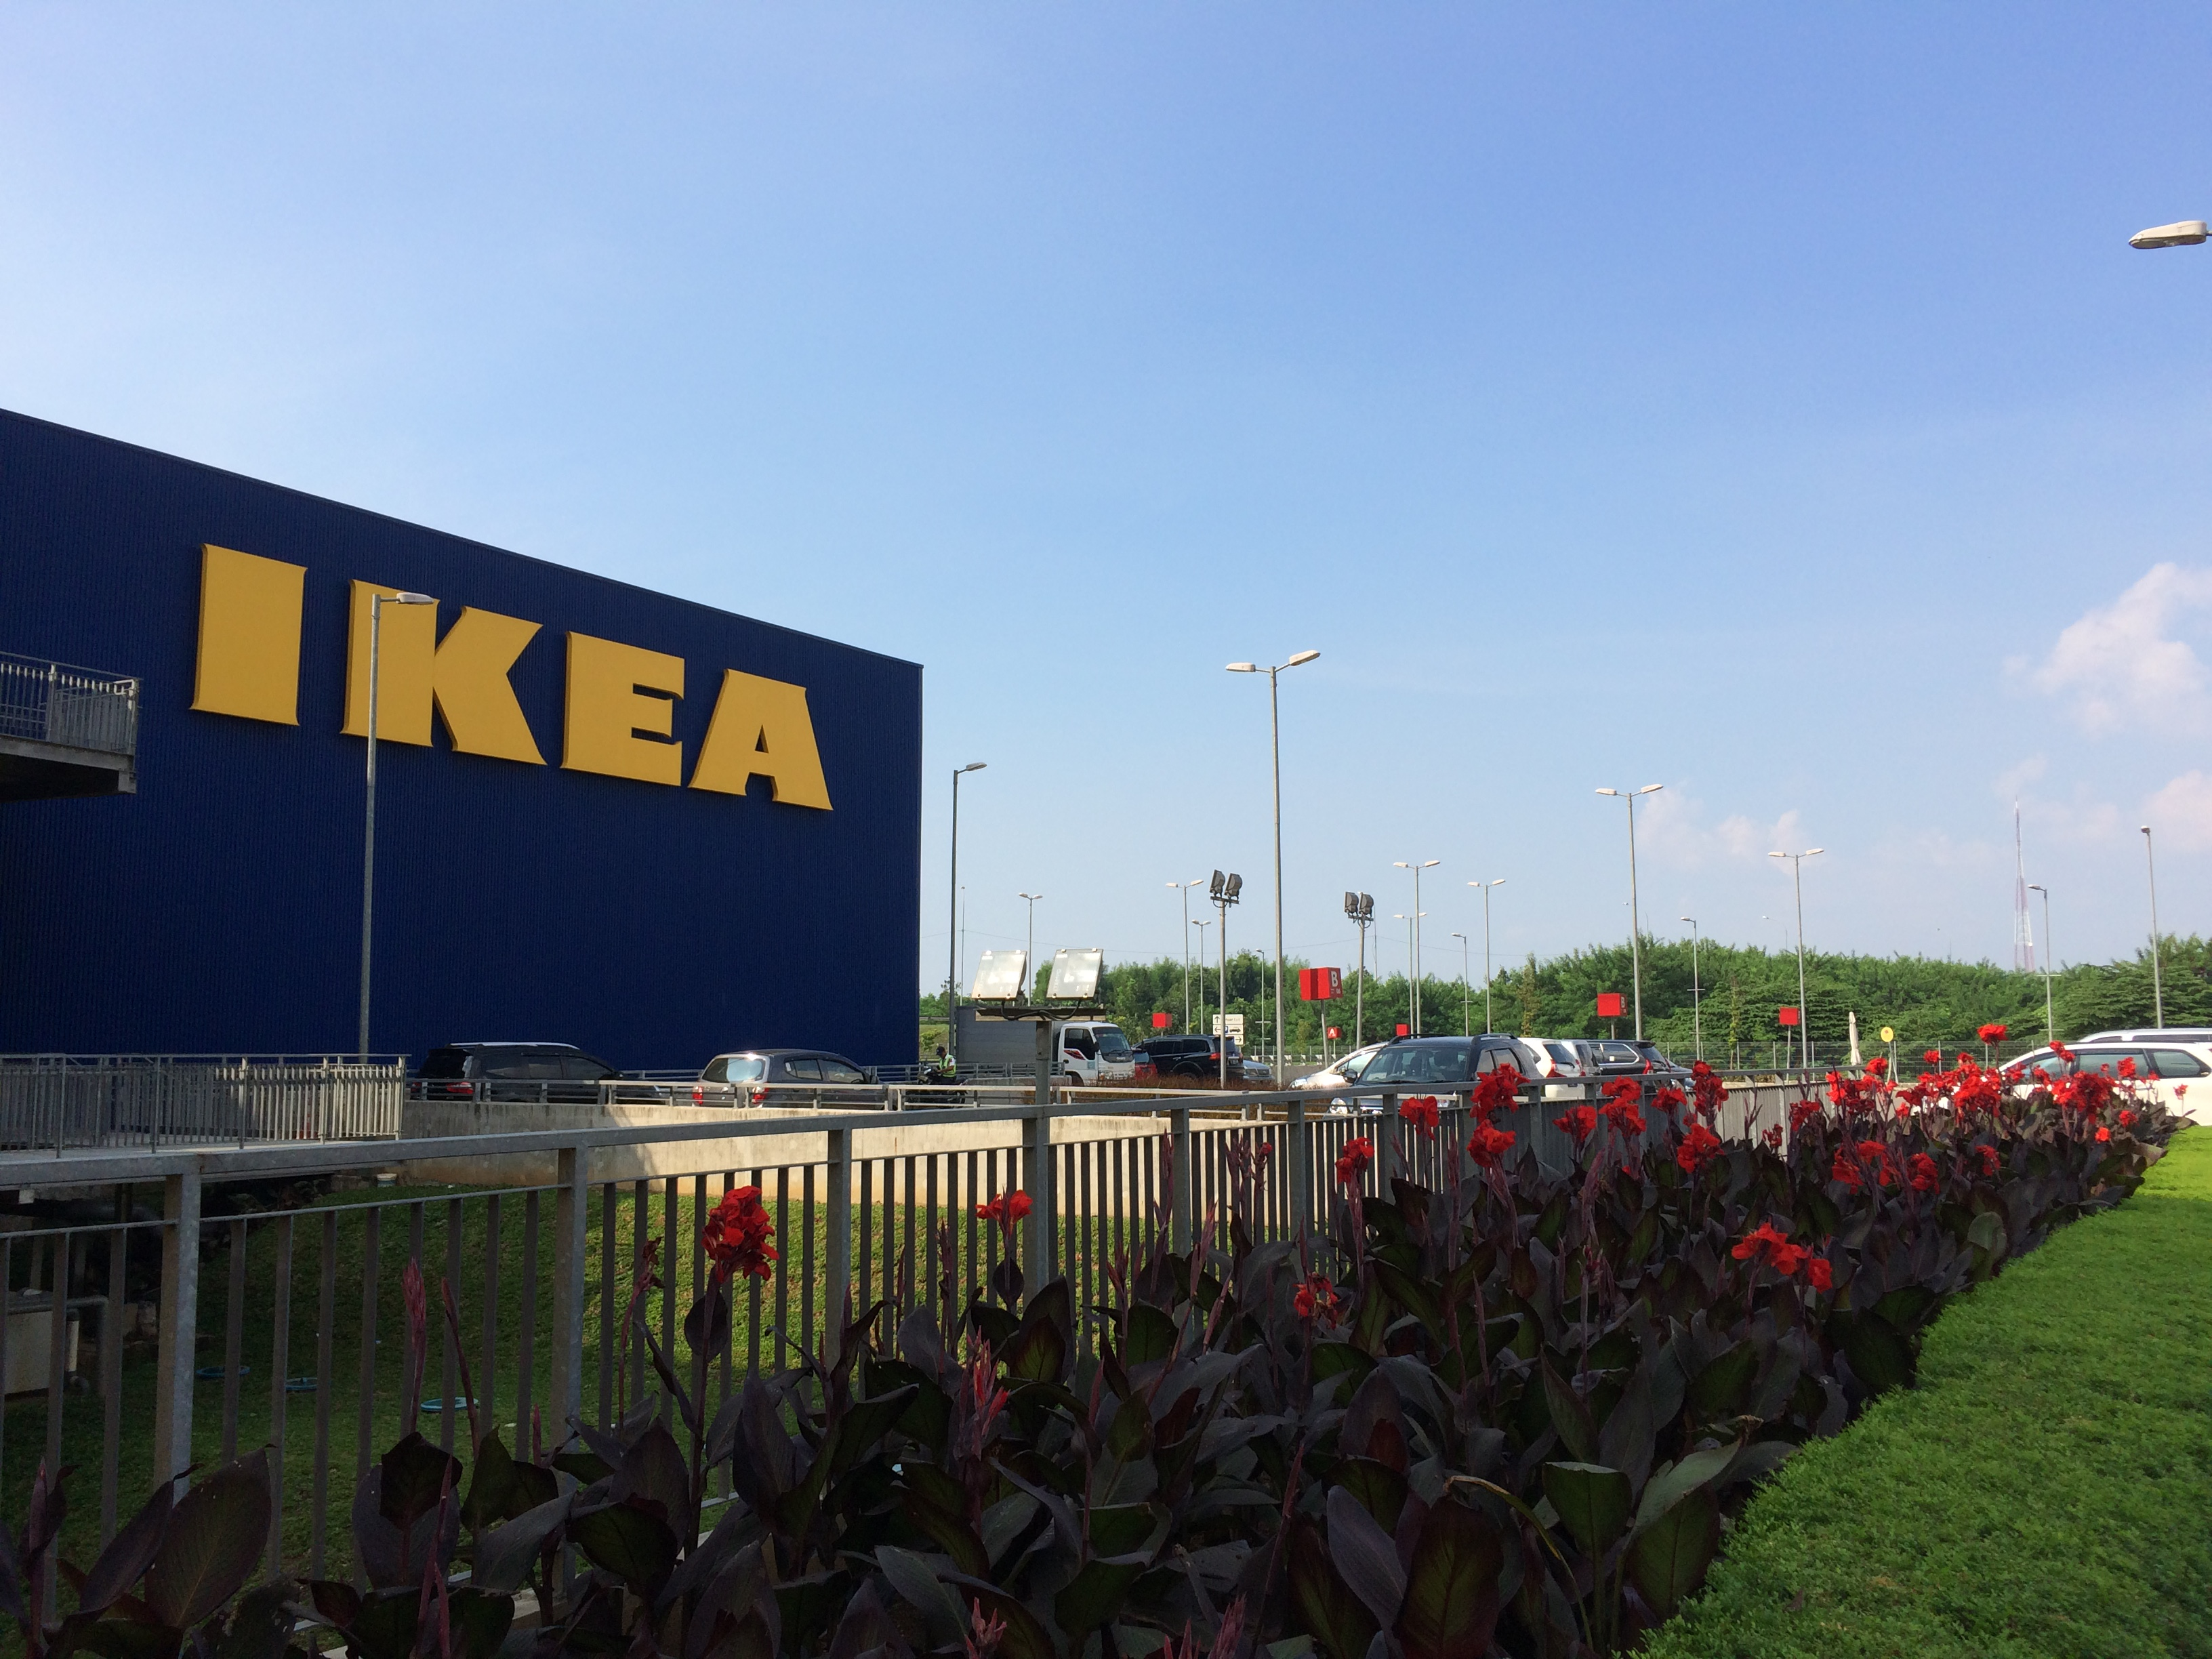 ikea in indonesia Ikea has lost a trademark battle in indonesia after the country's highest court ruled the name was owned by a local company, according to court documents released.